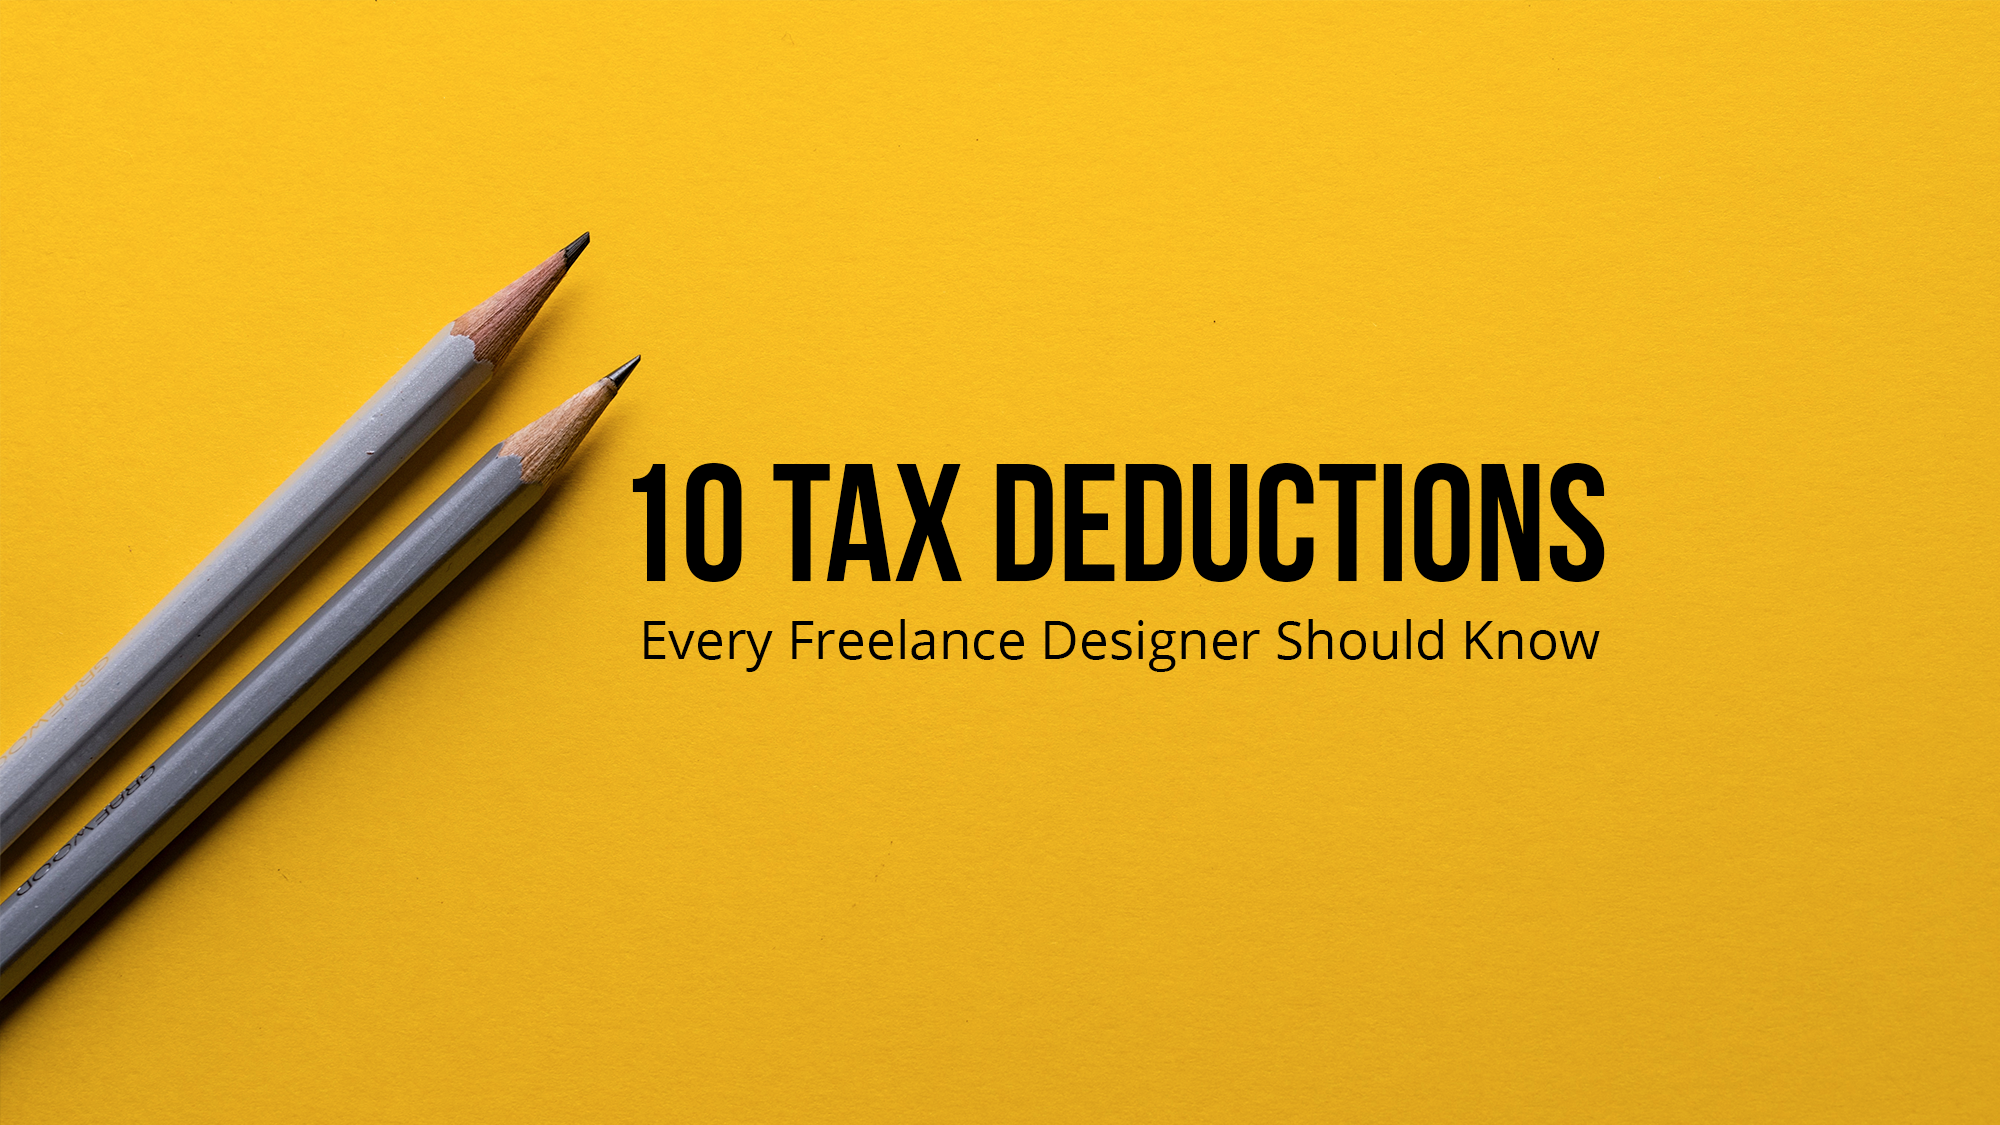 10 Tax Deductions that Every Freelance Designer Needs to Know image